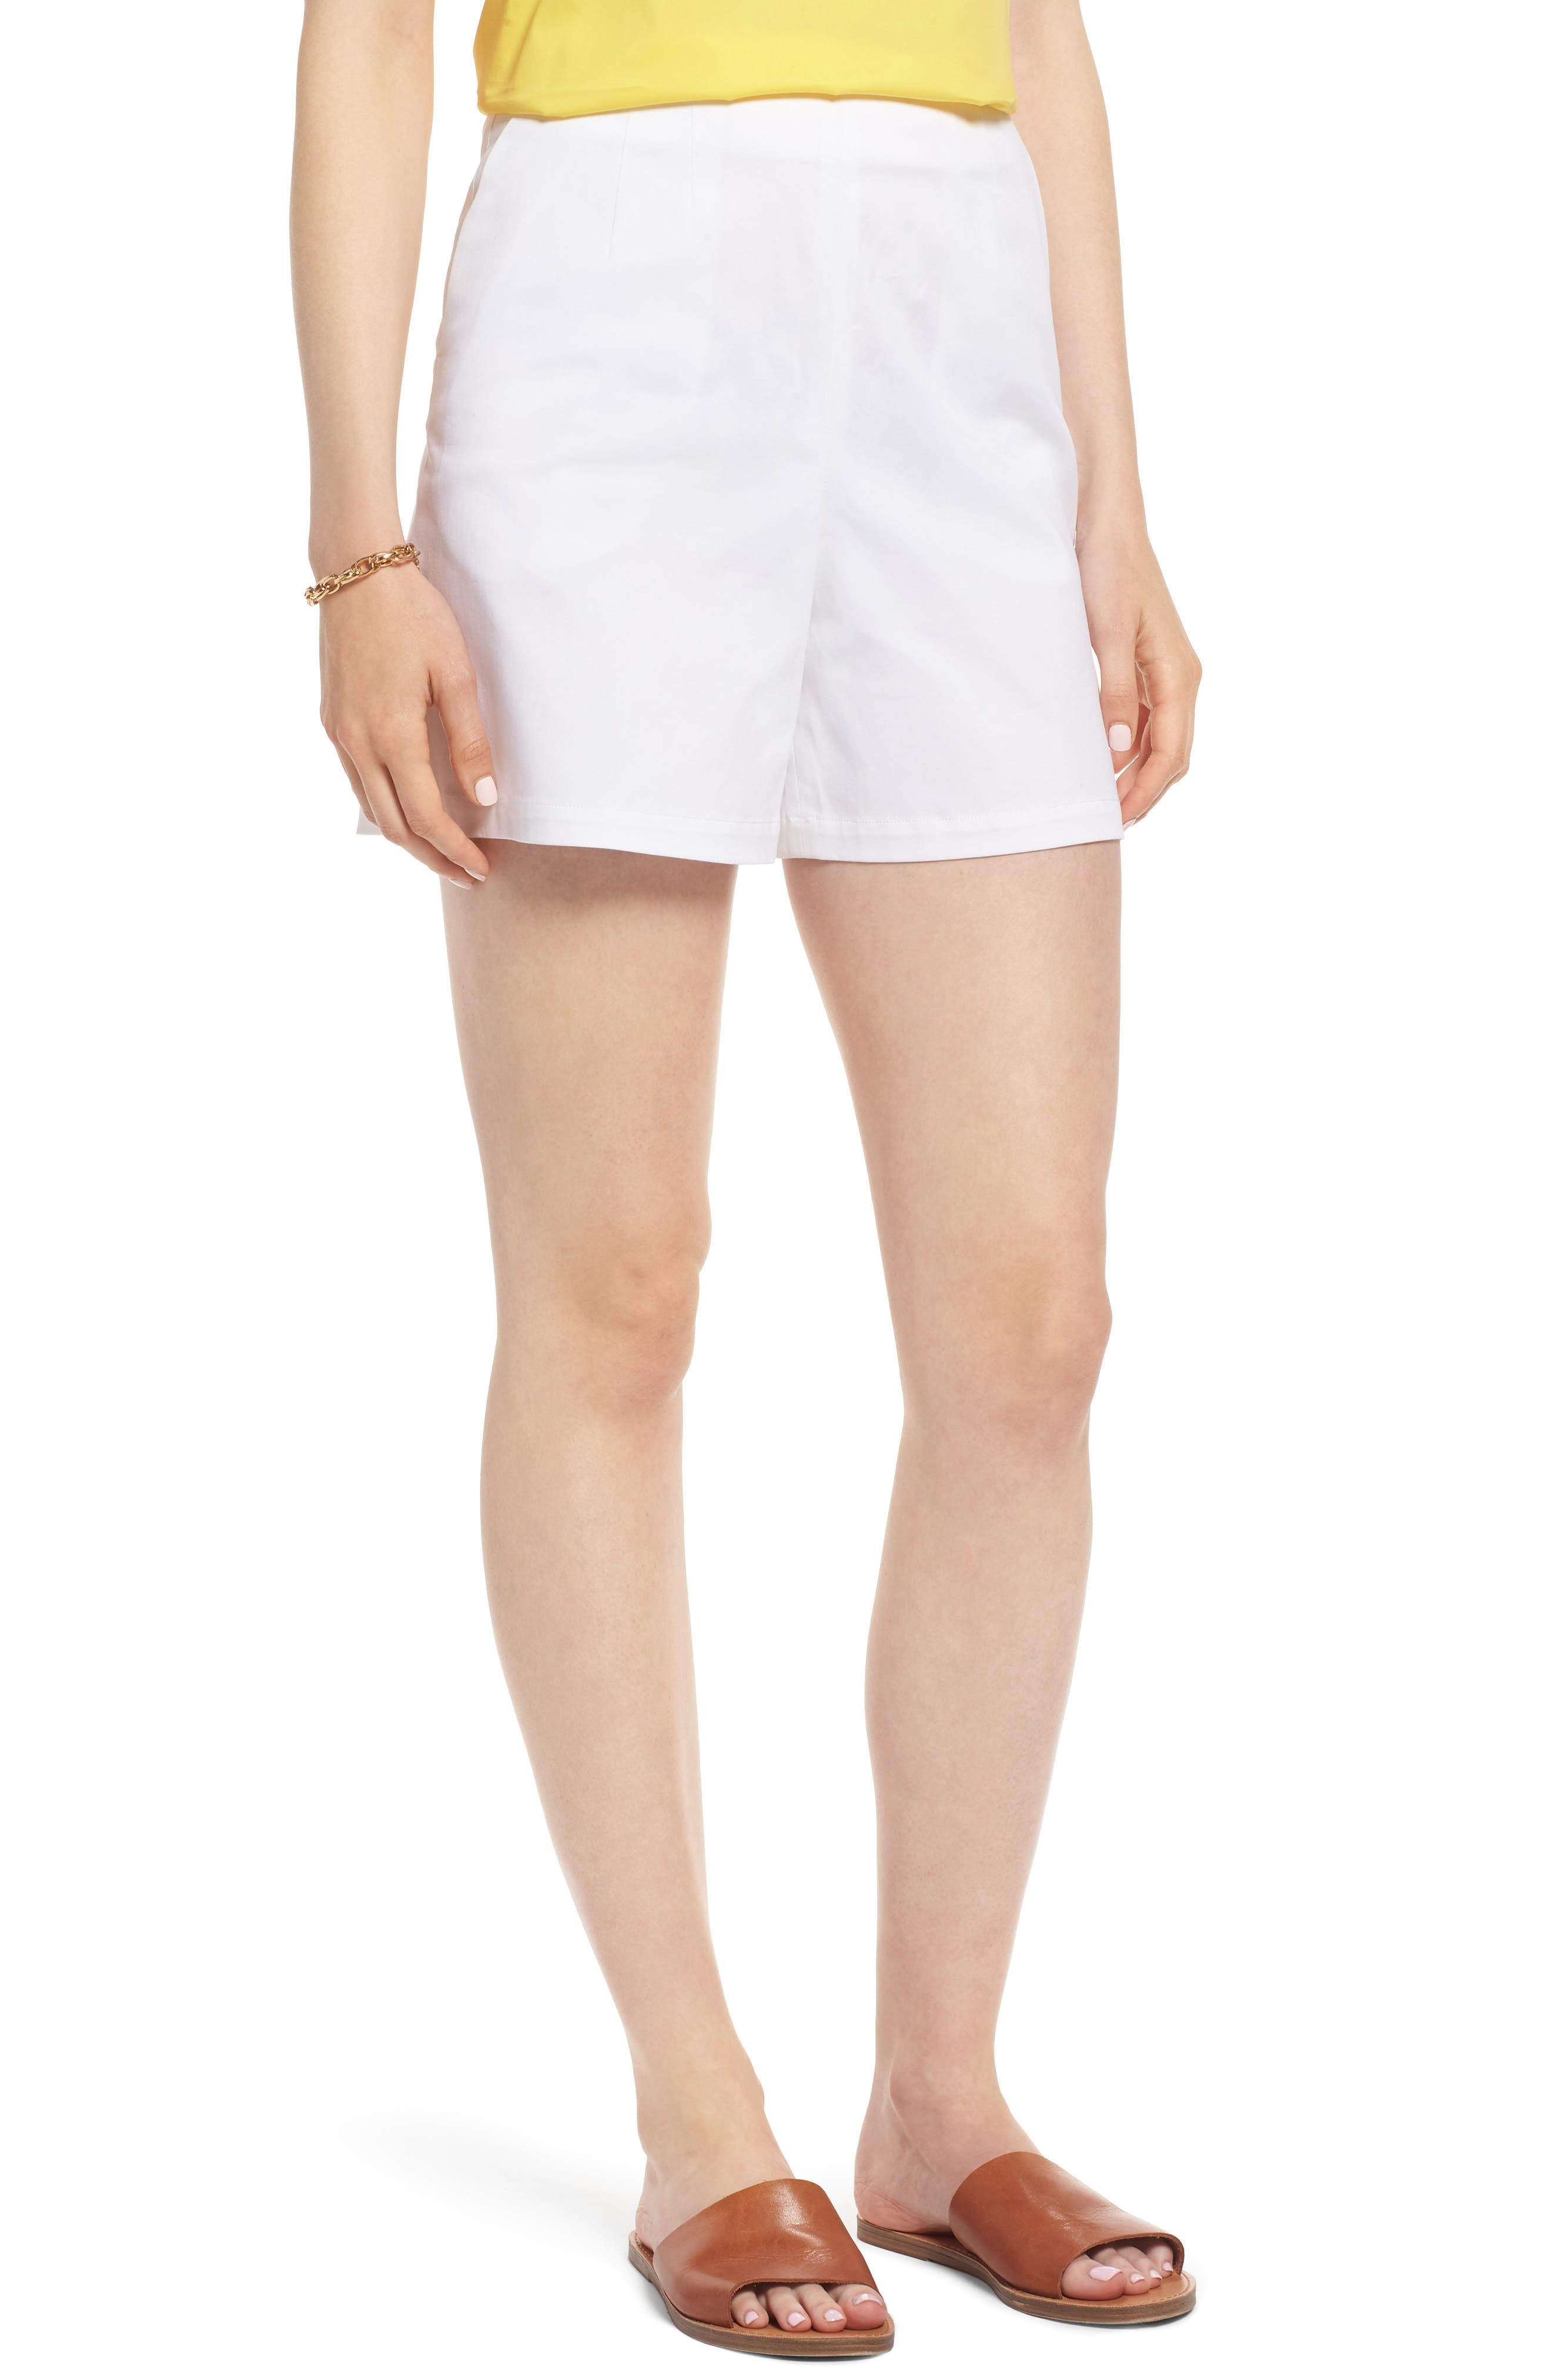 Clean Twill Shorts,                         Main,                         color, White